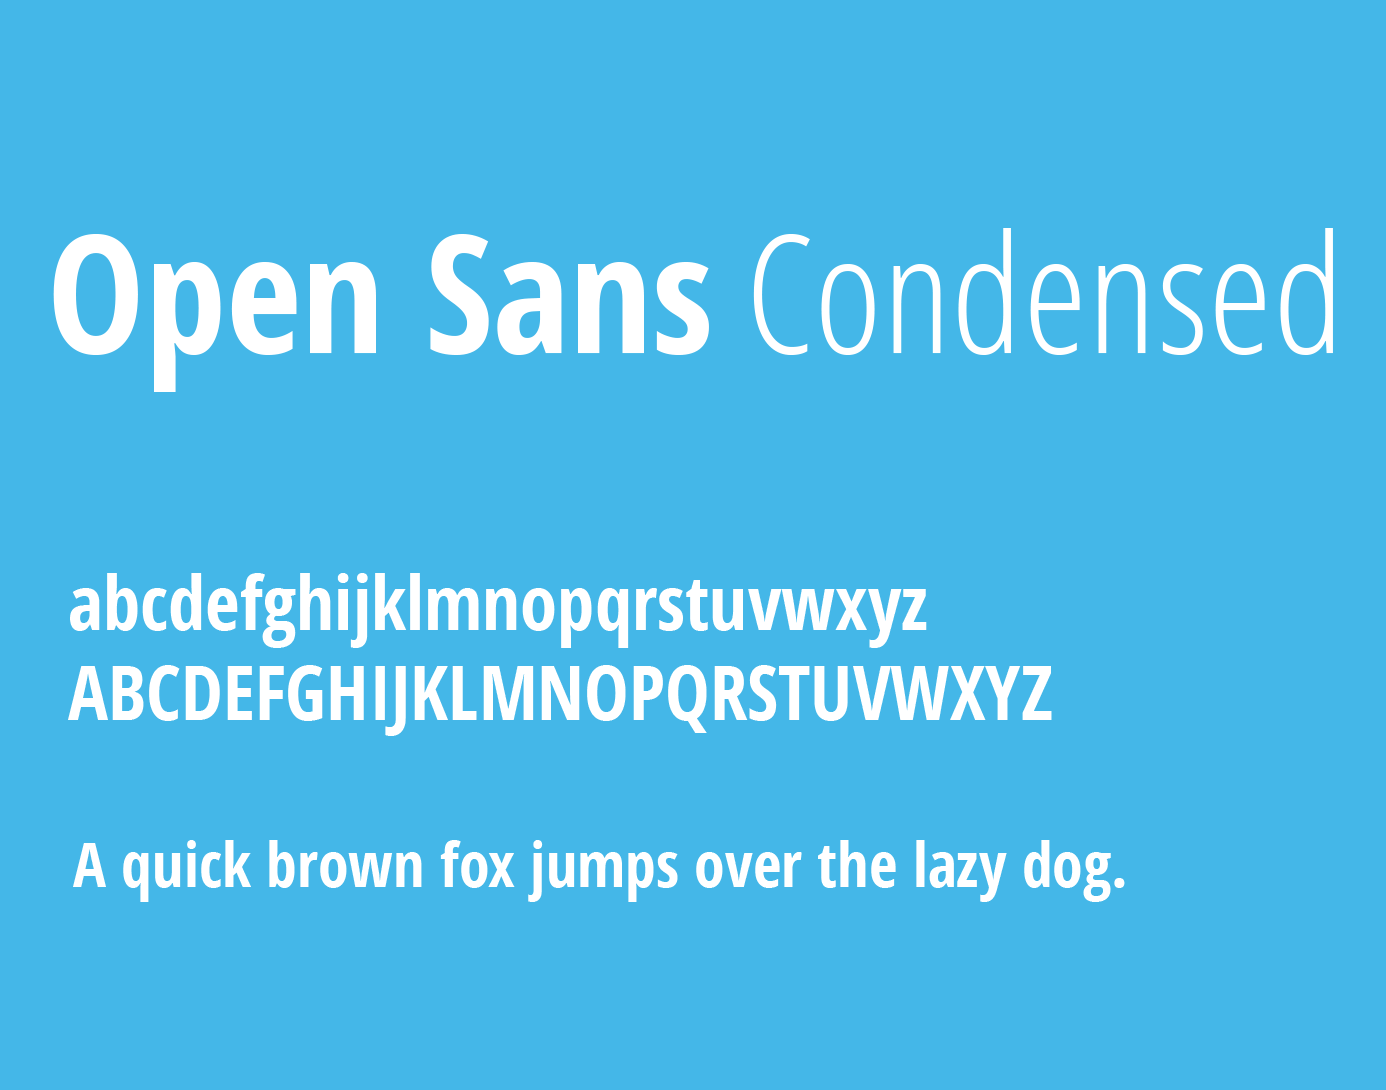 https://fontclarity.com/wp-content/uploads/2019/09/open-sans-condensed-download-0.png Free Download